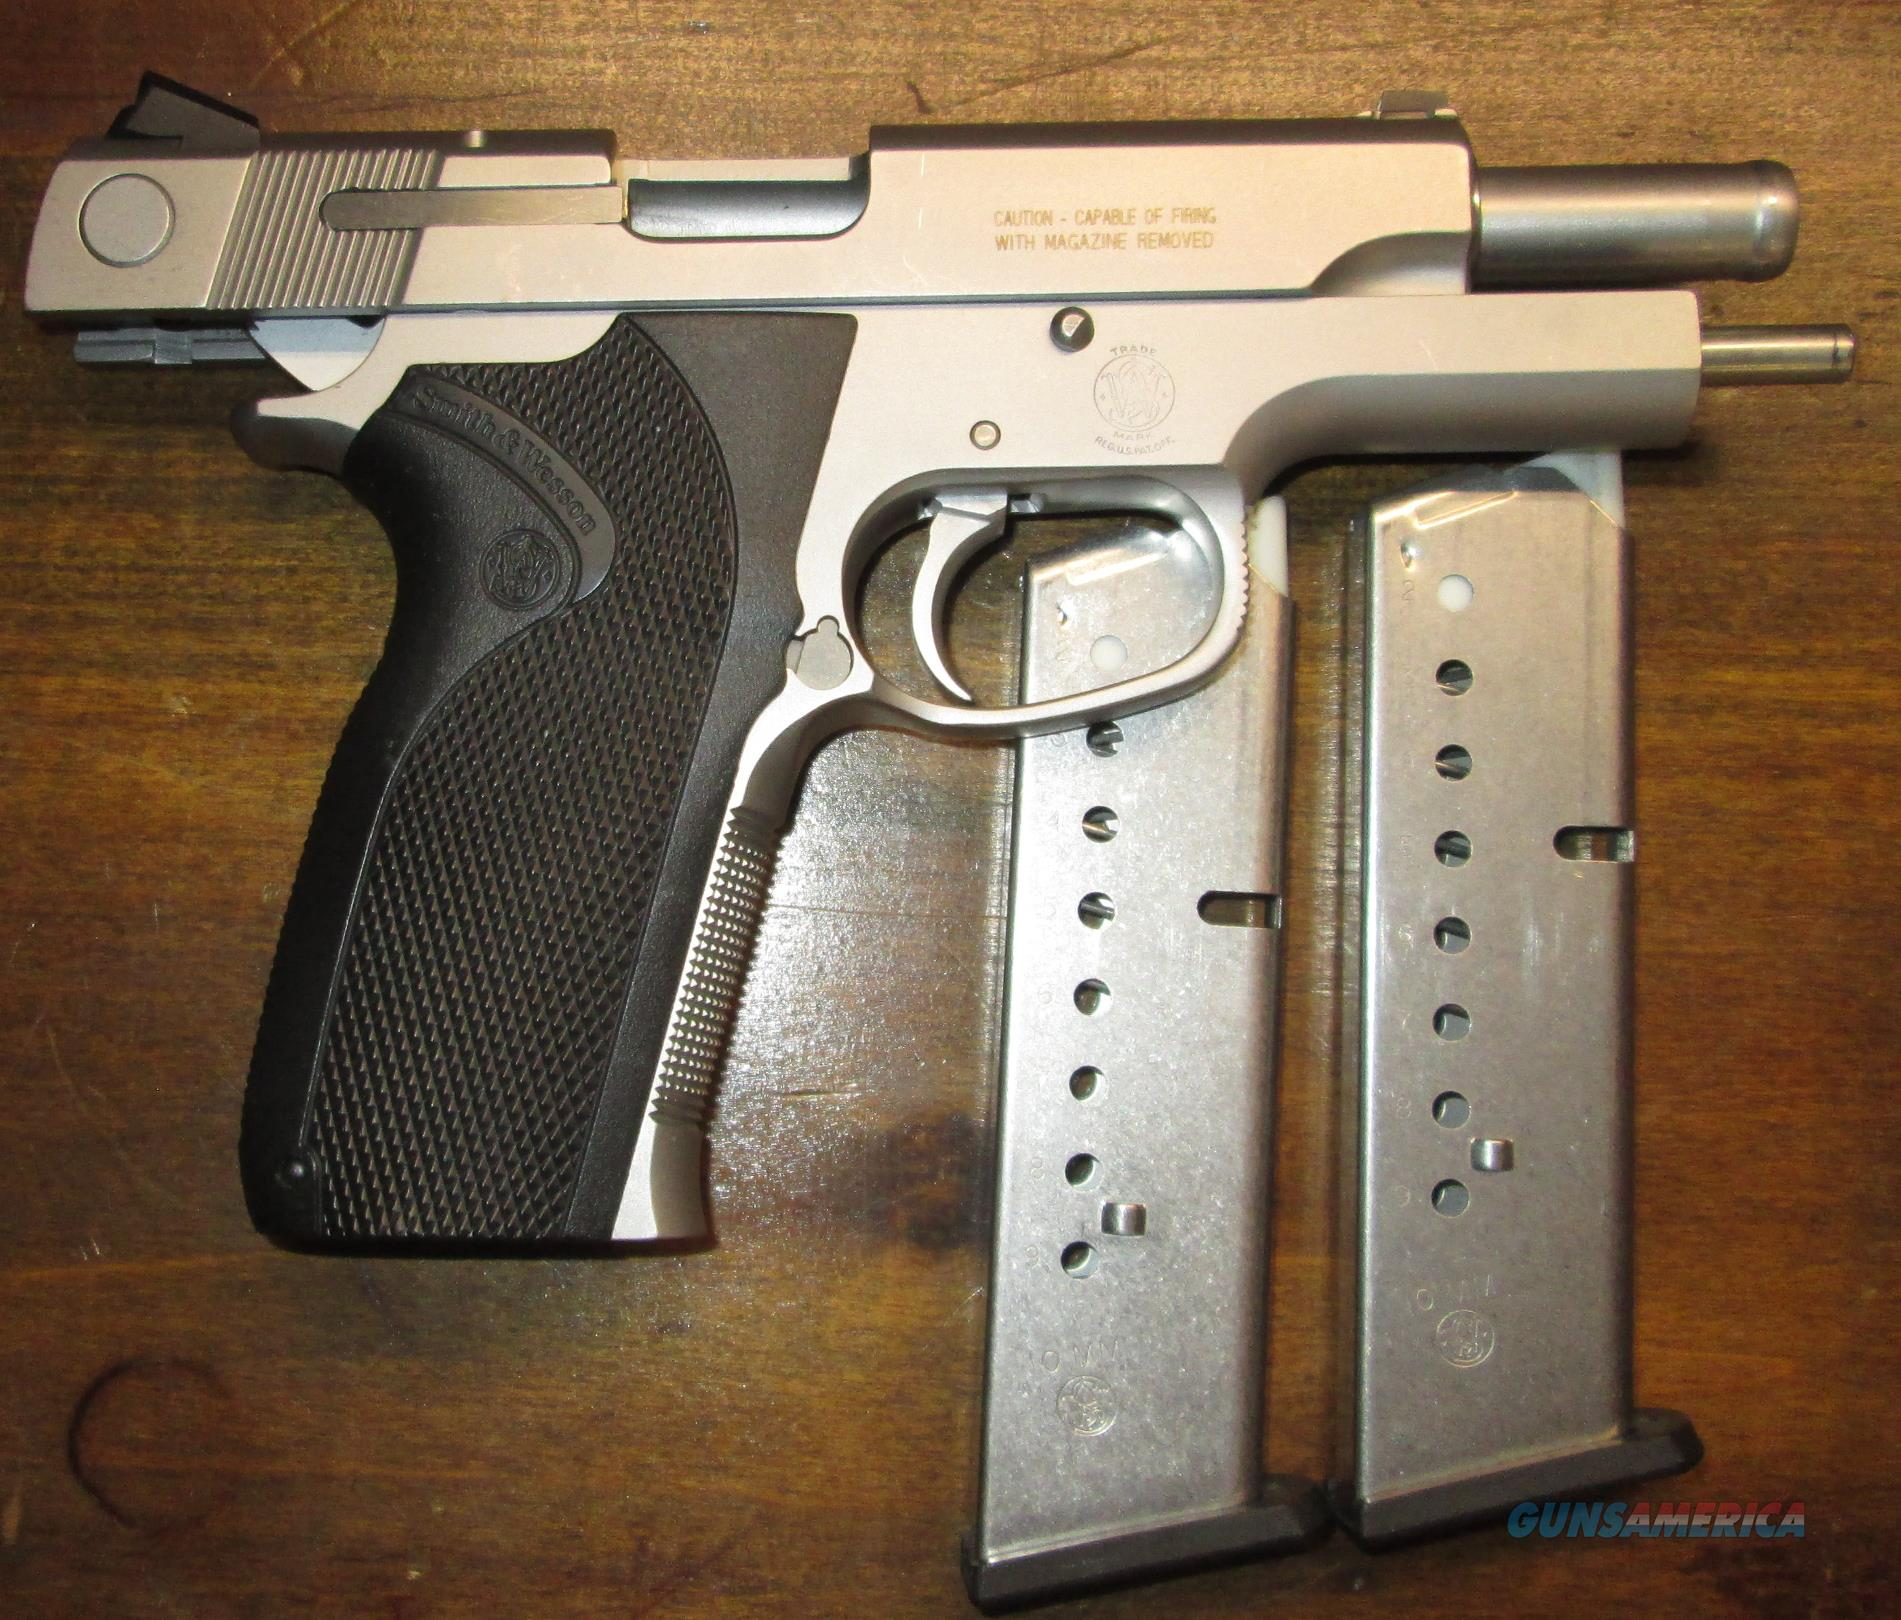 S&W 1076 10MM VERIFIED Gov't Issued Pistol  Guns > Pistols > Smith & Wesson Pistols - Autos > Steel Frame